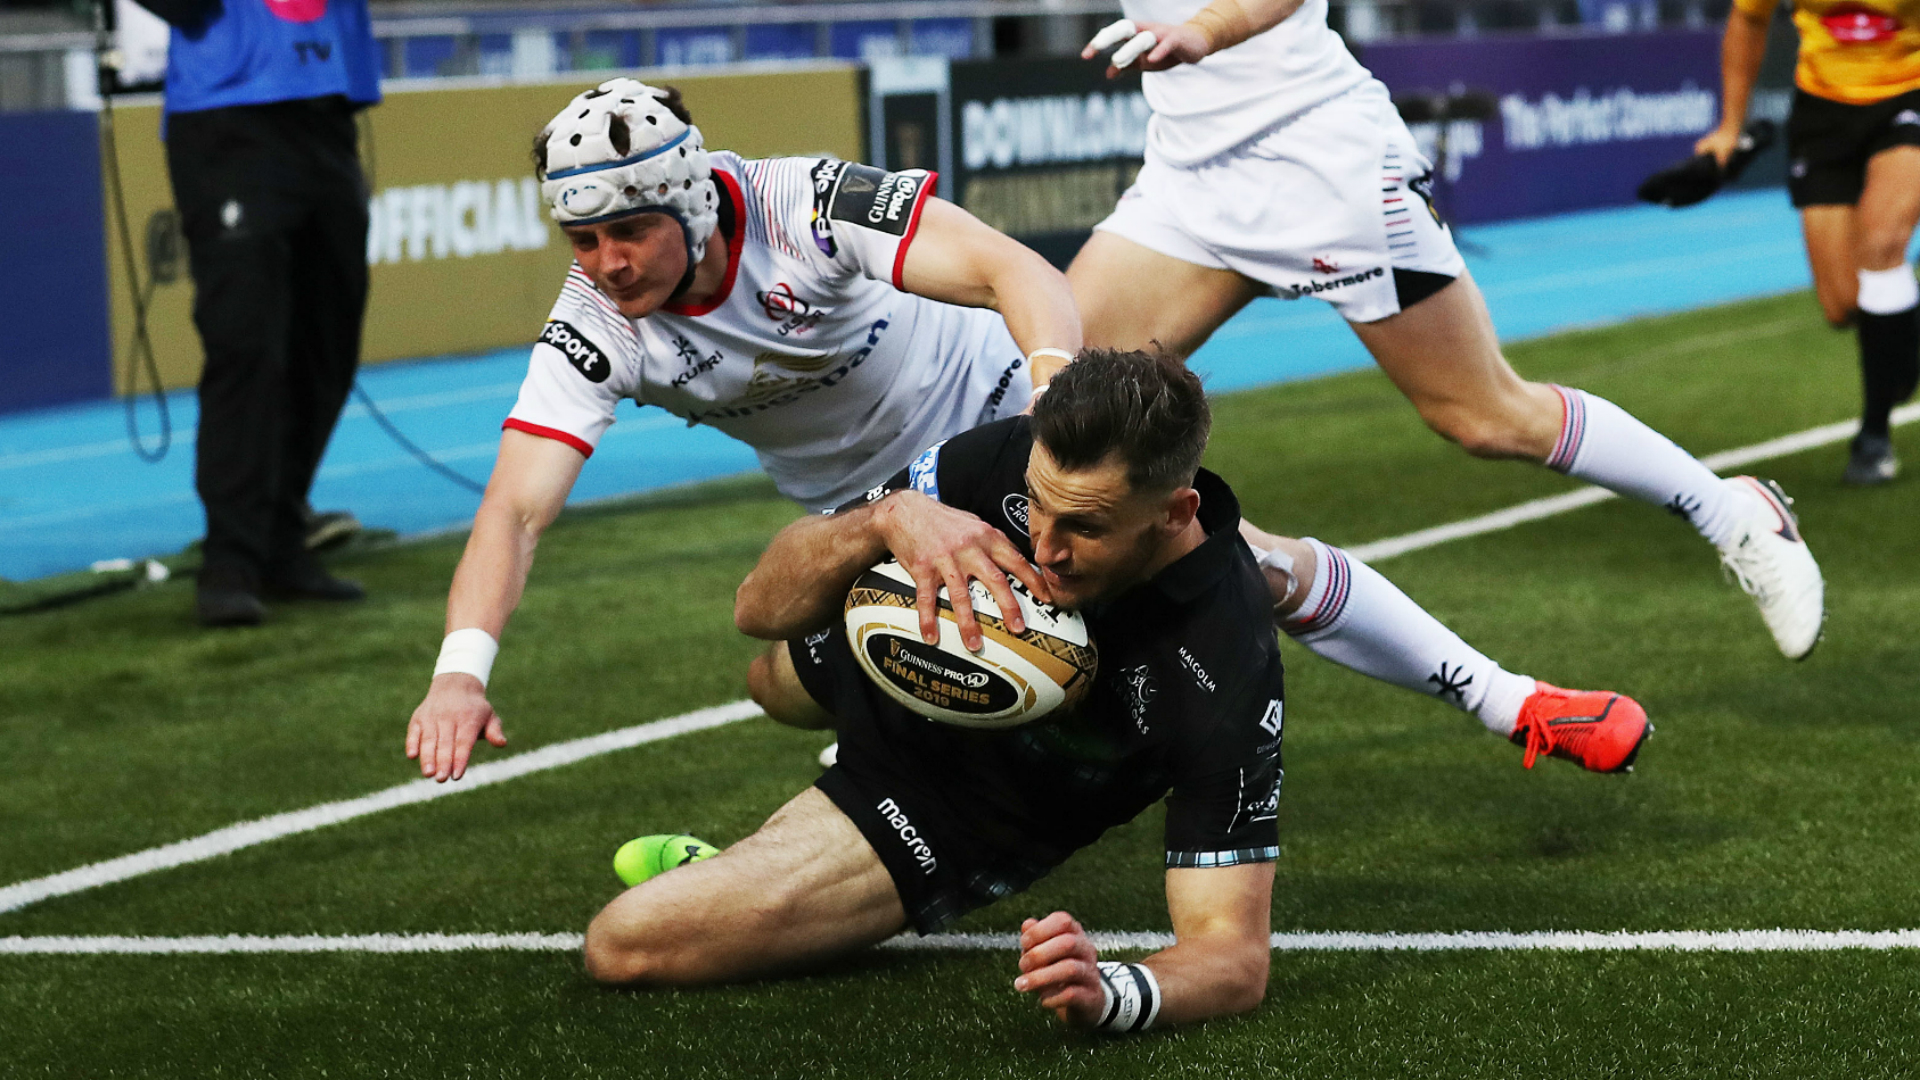 Seven-try Warriors blitz Ulster to coast into Pro14 final